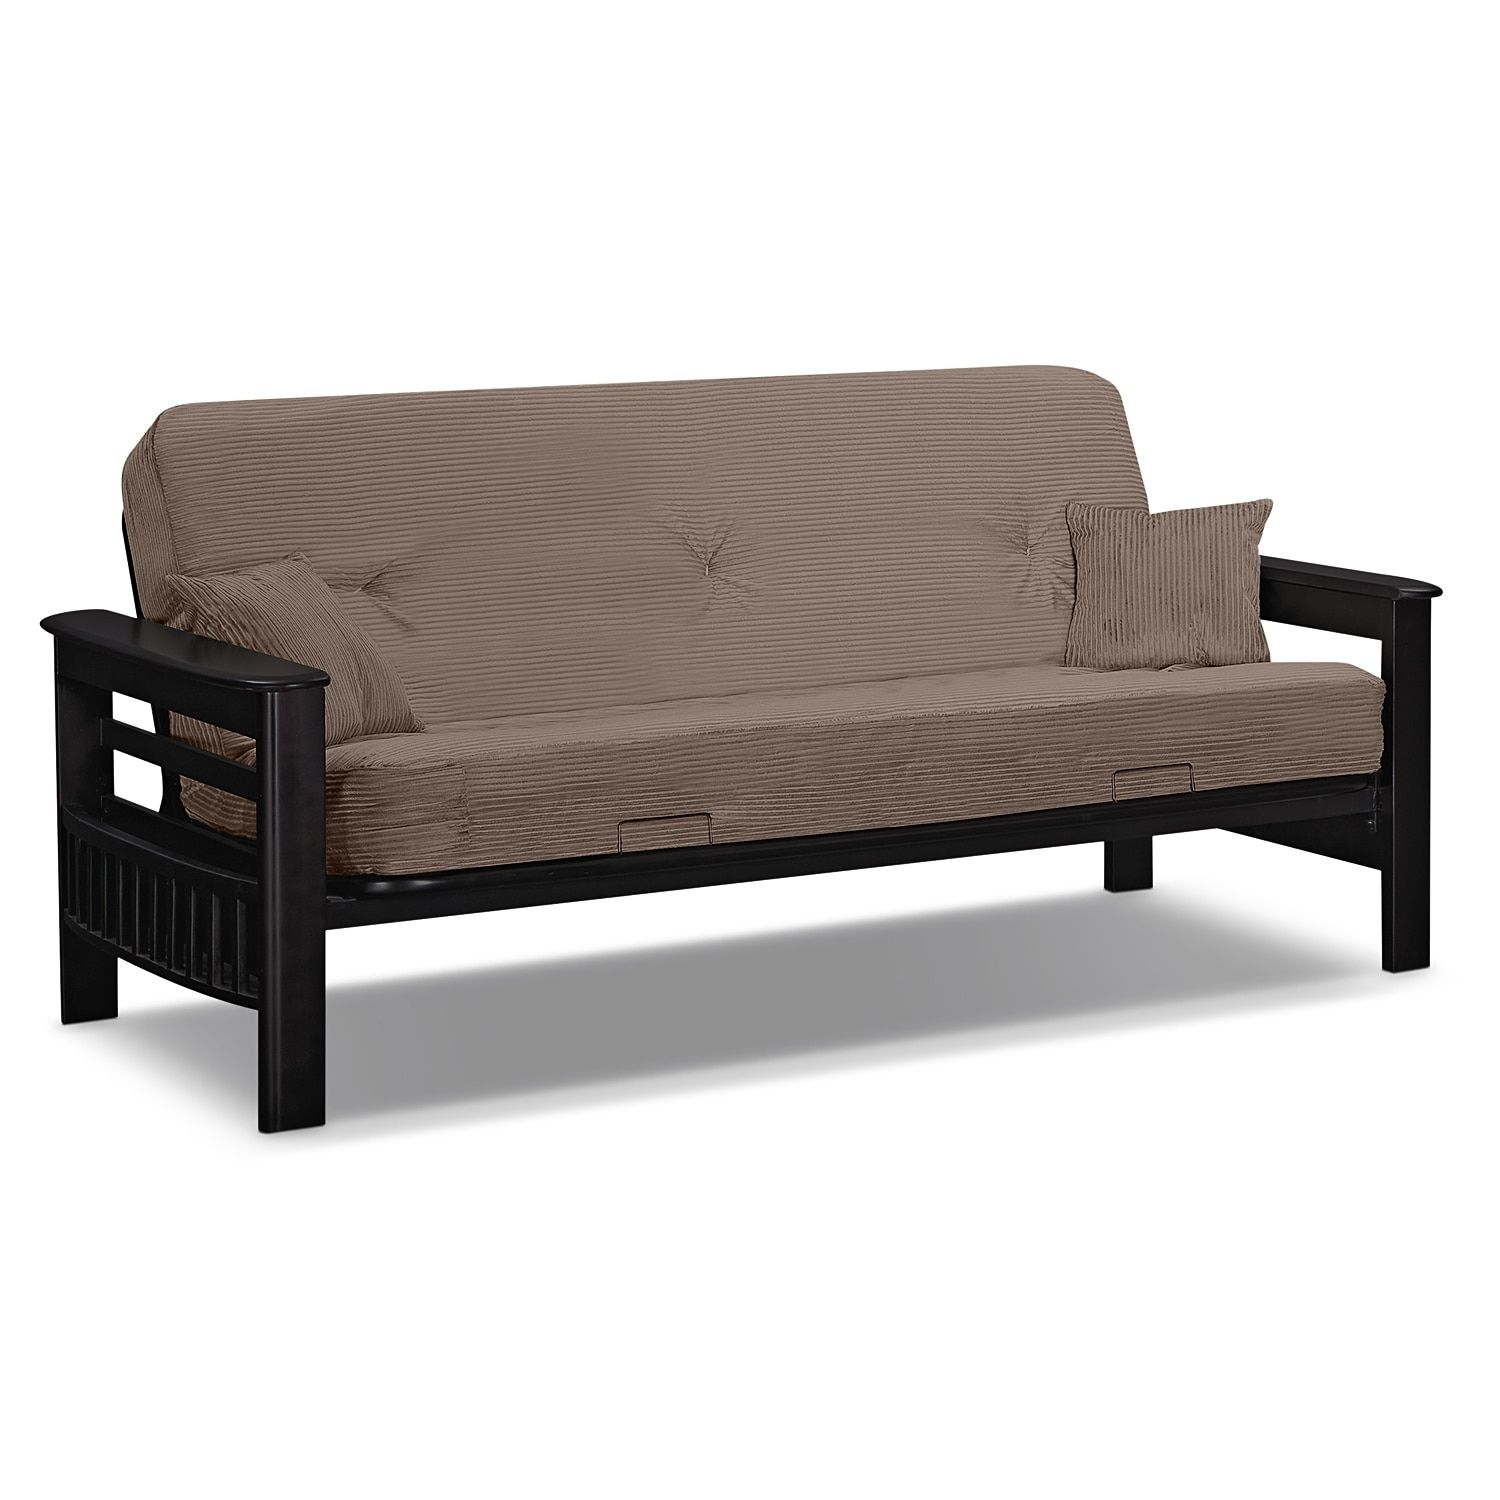 Tampa Futon Sofa Bed Beige Value City Furniture Furniture Futon